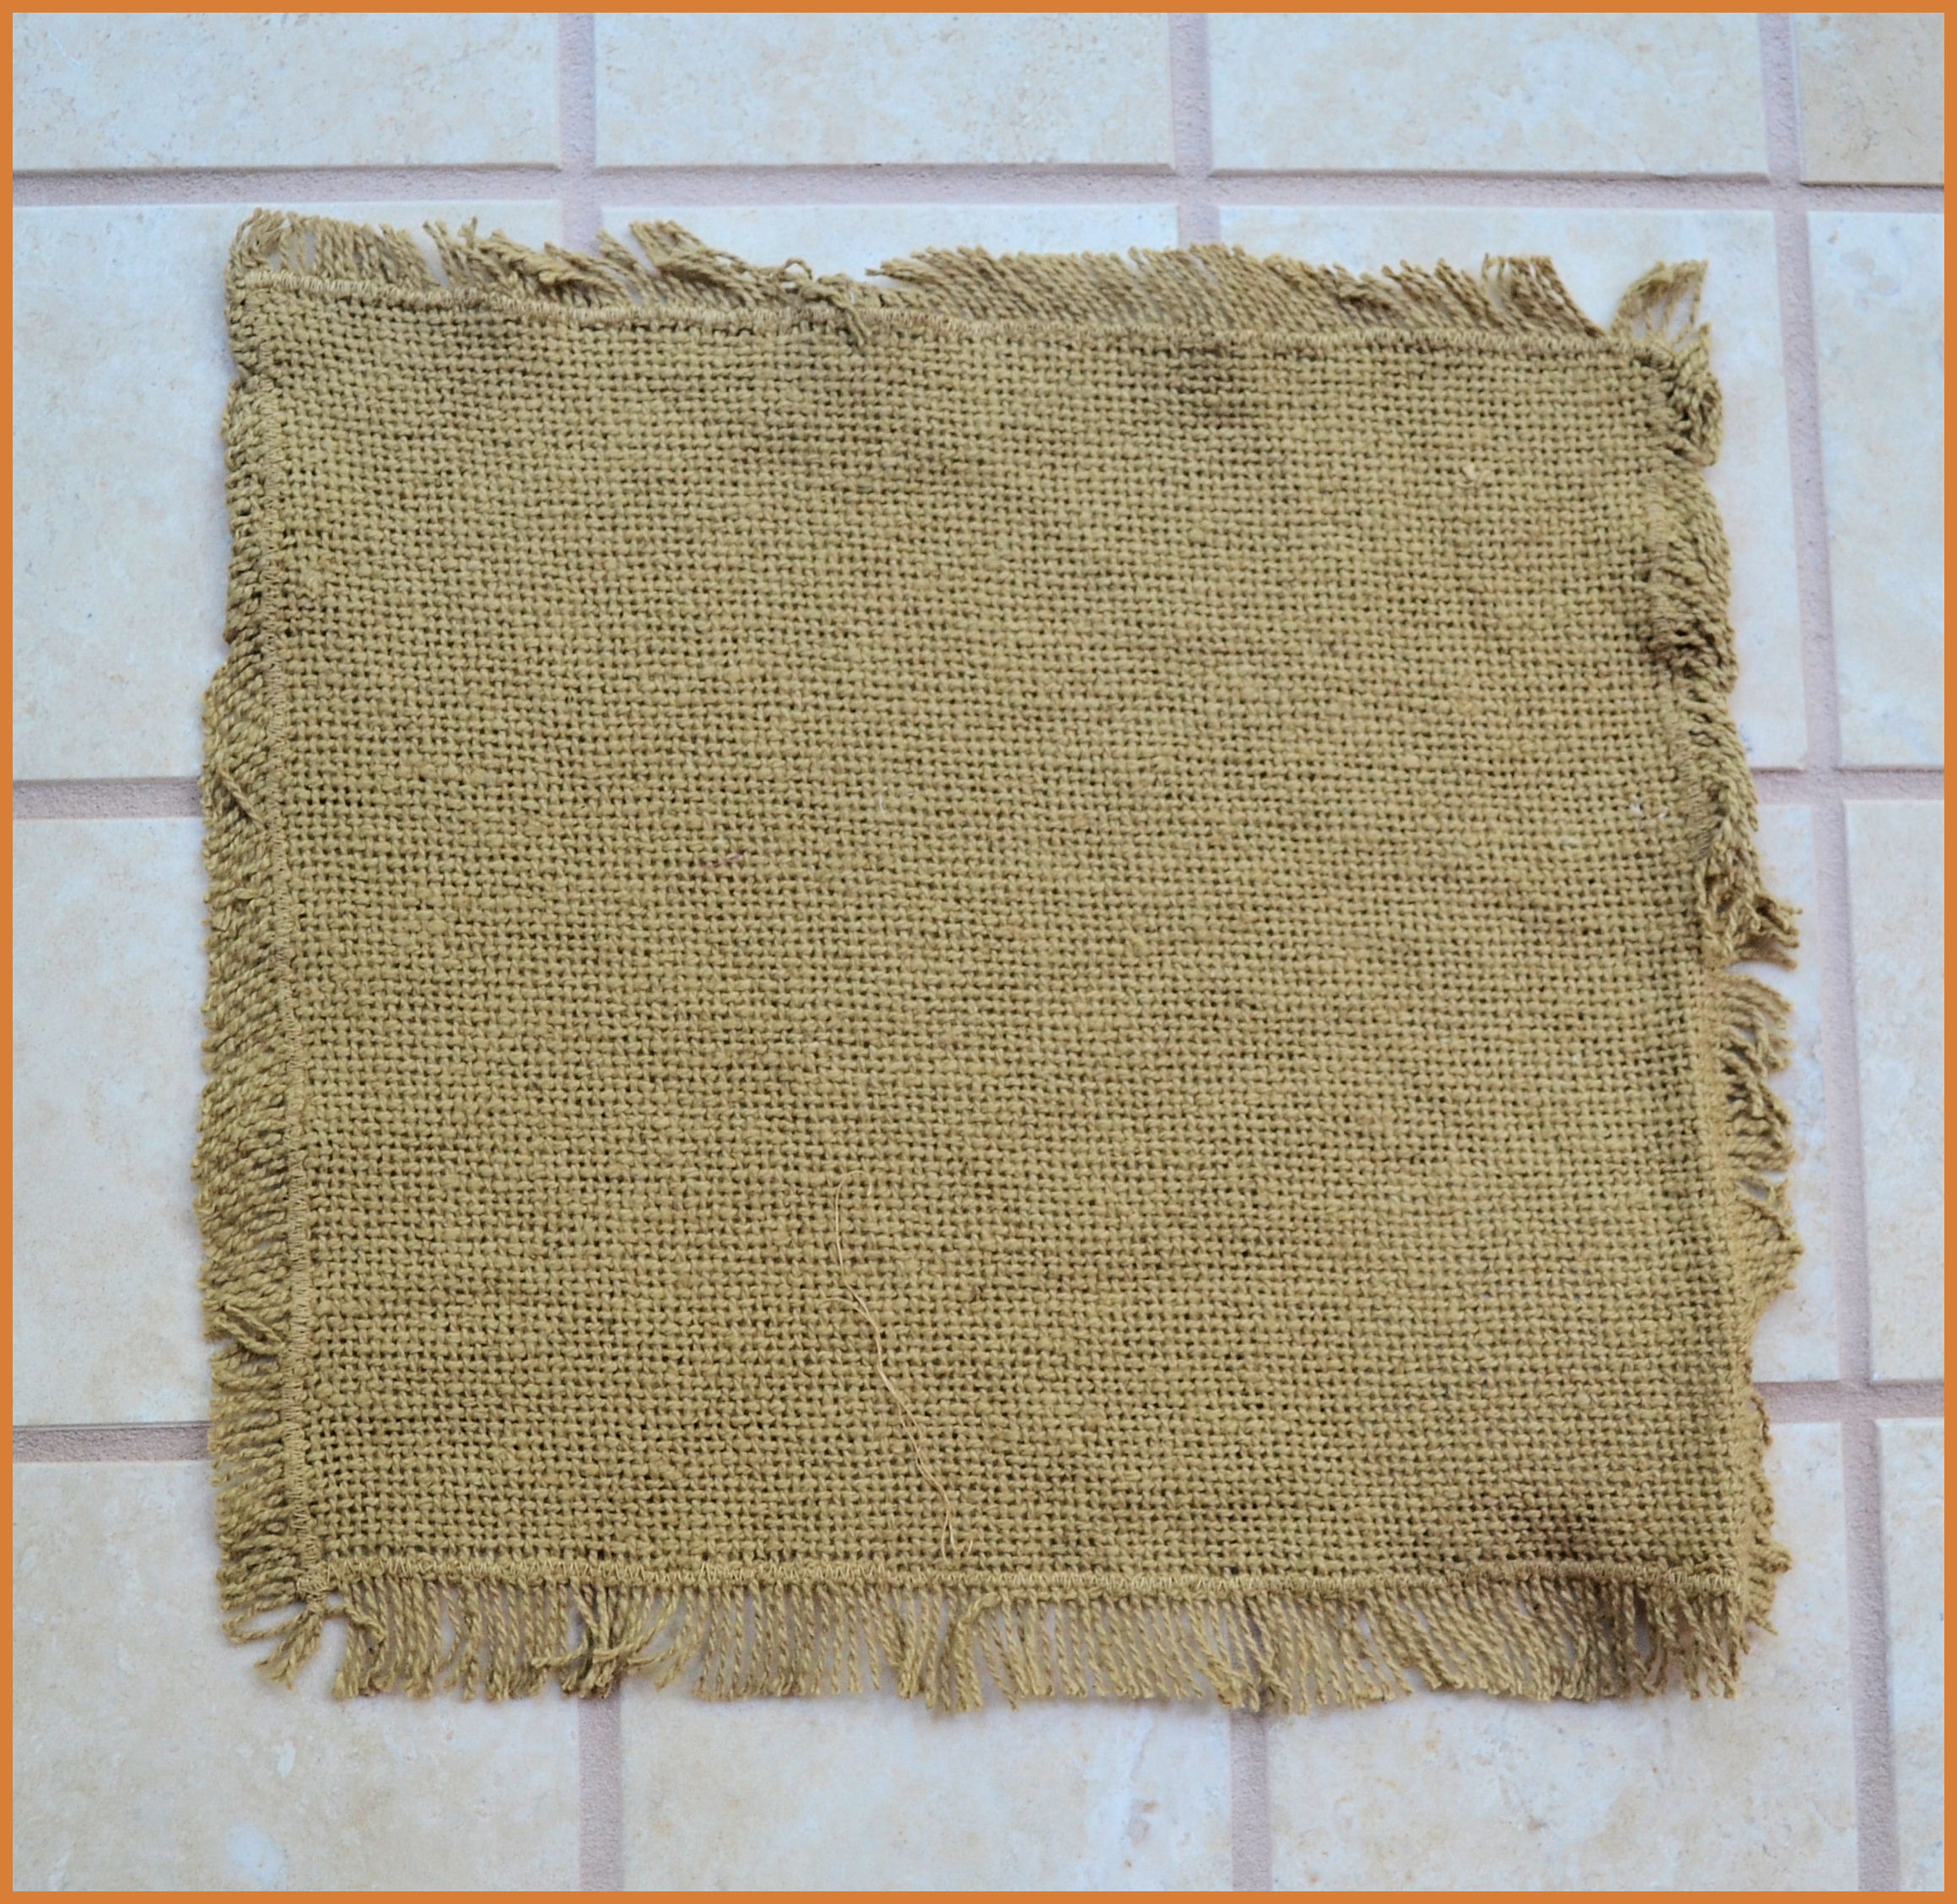 da-burlap-natural-tablemat-fringed-9x9-419850060.jpg